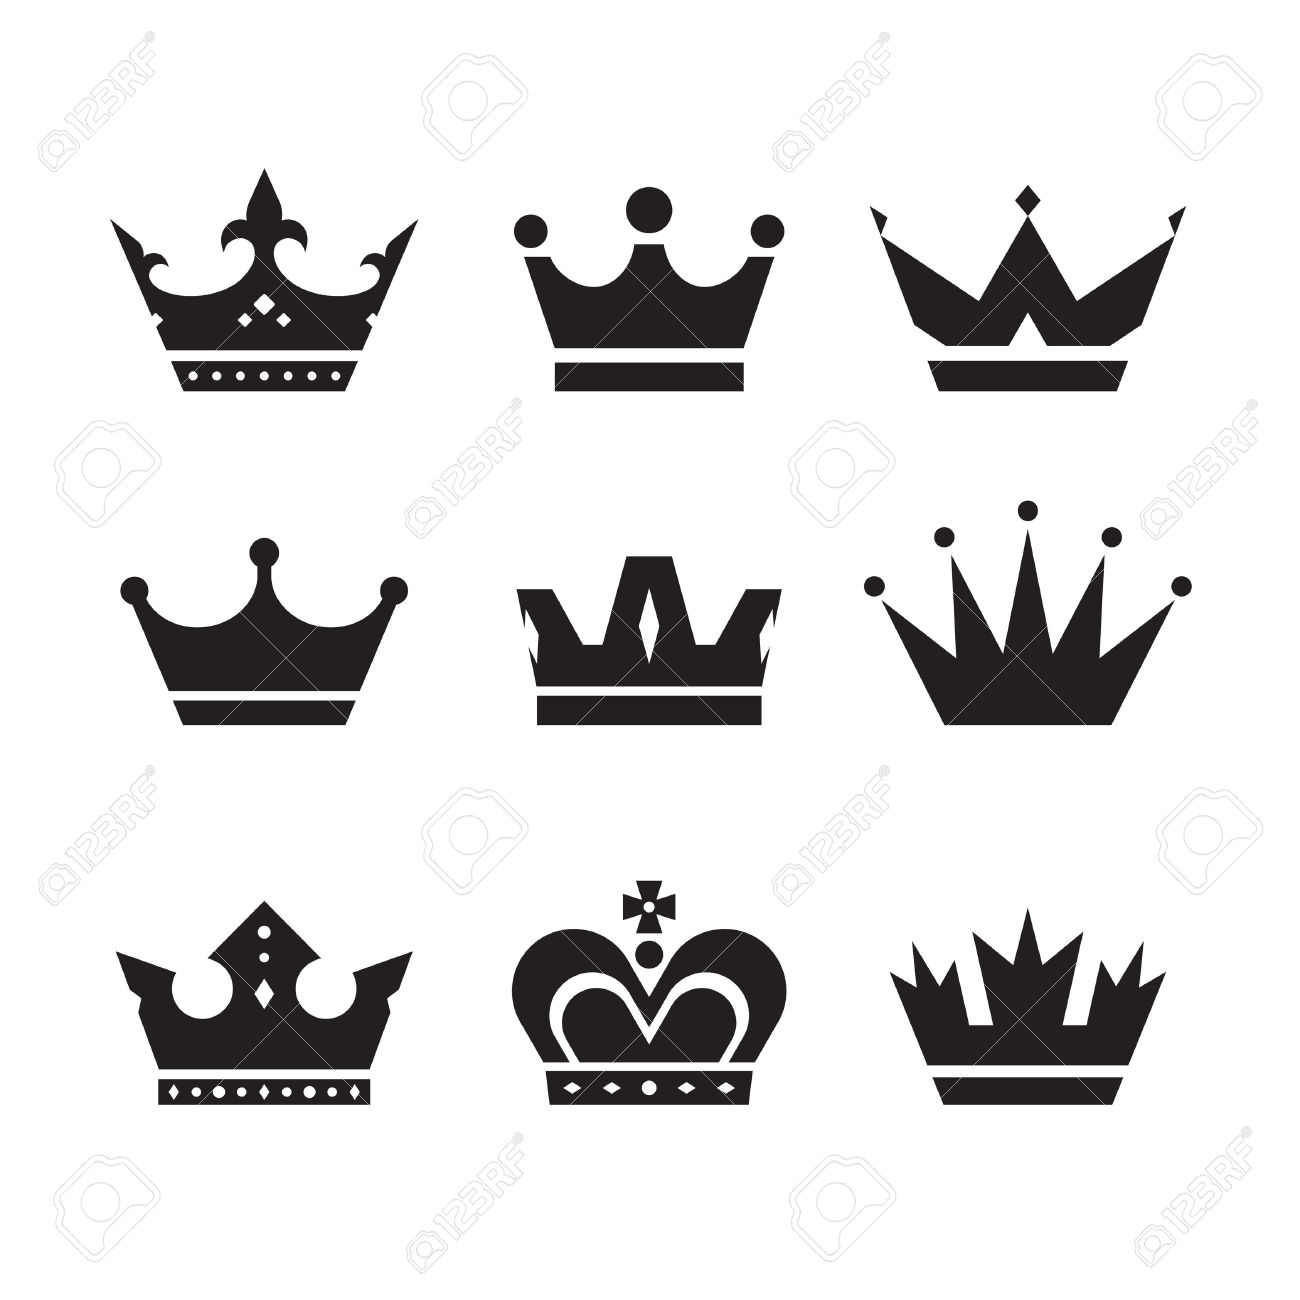 1,280 Logo Majestic Stock Vector Illustration And Royalty Free.